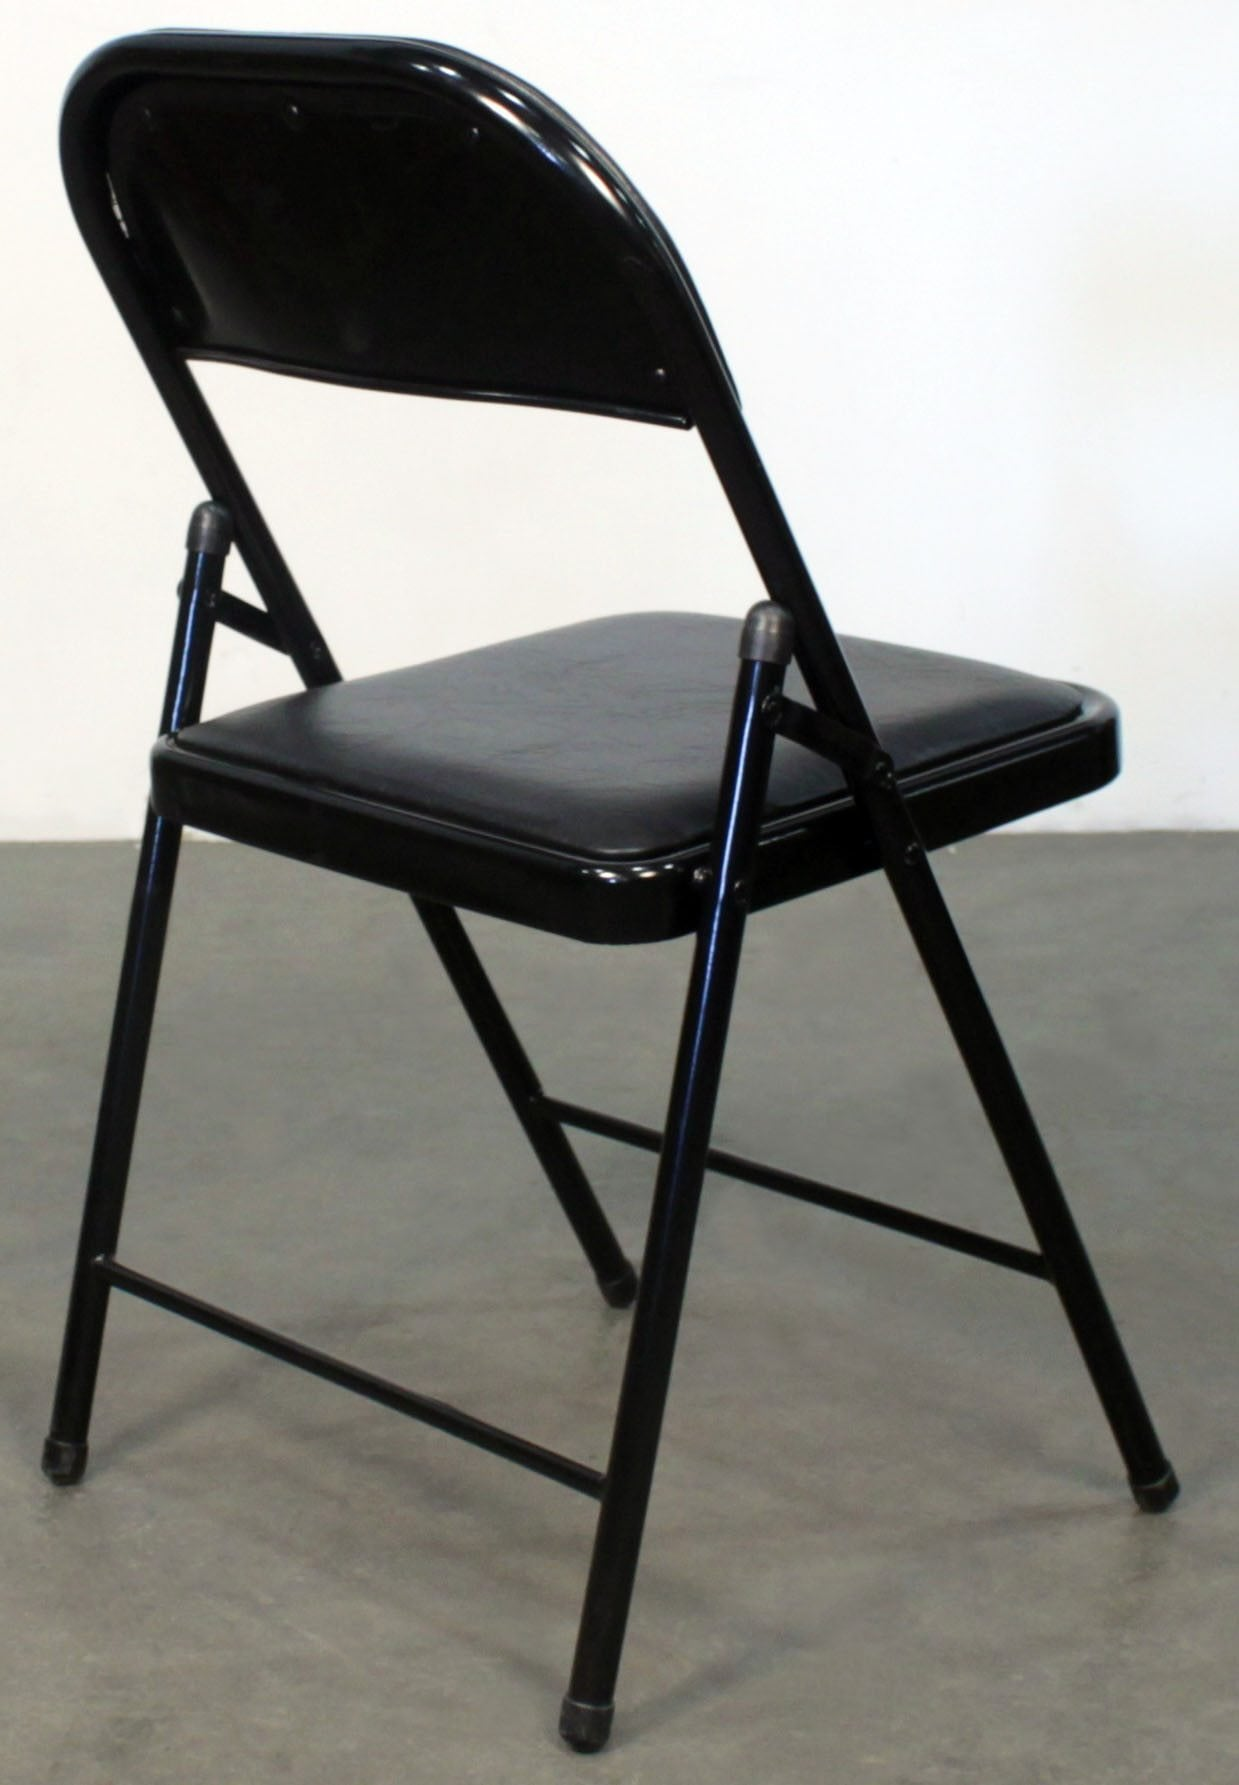 Black Folding Chairs Gosit New Cushioned Folding Chair Black National Office